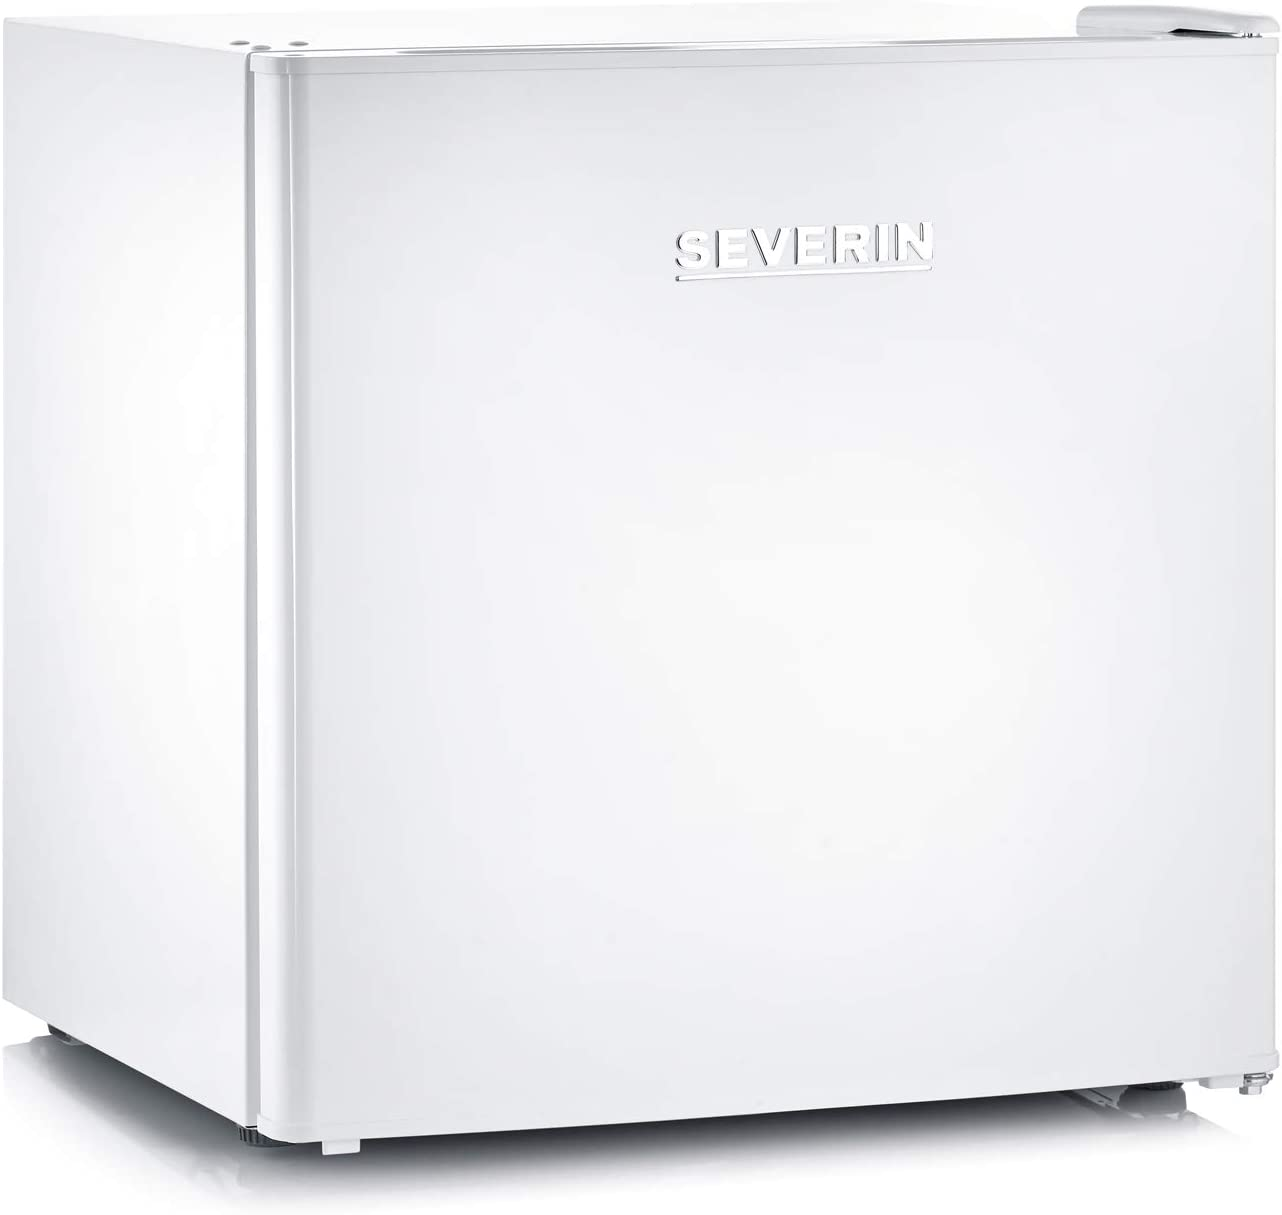 Severin GB 8882 - Mini-congelador, 32 l, 116.8 kWh/año, blanco